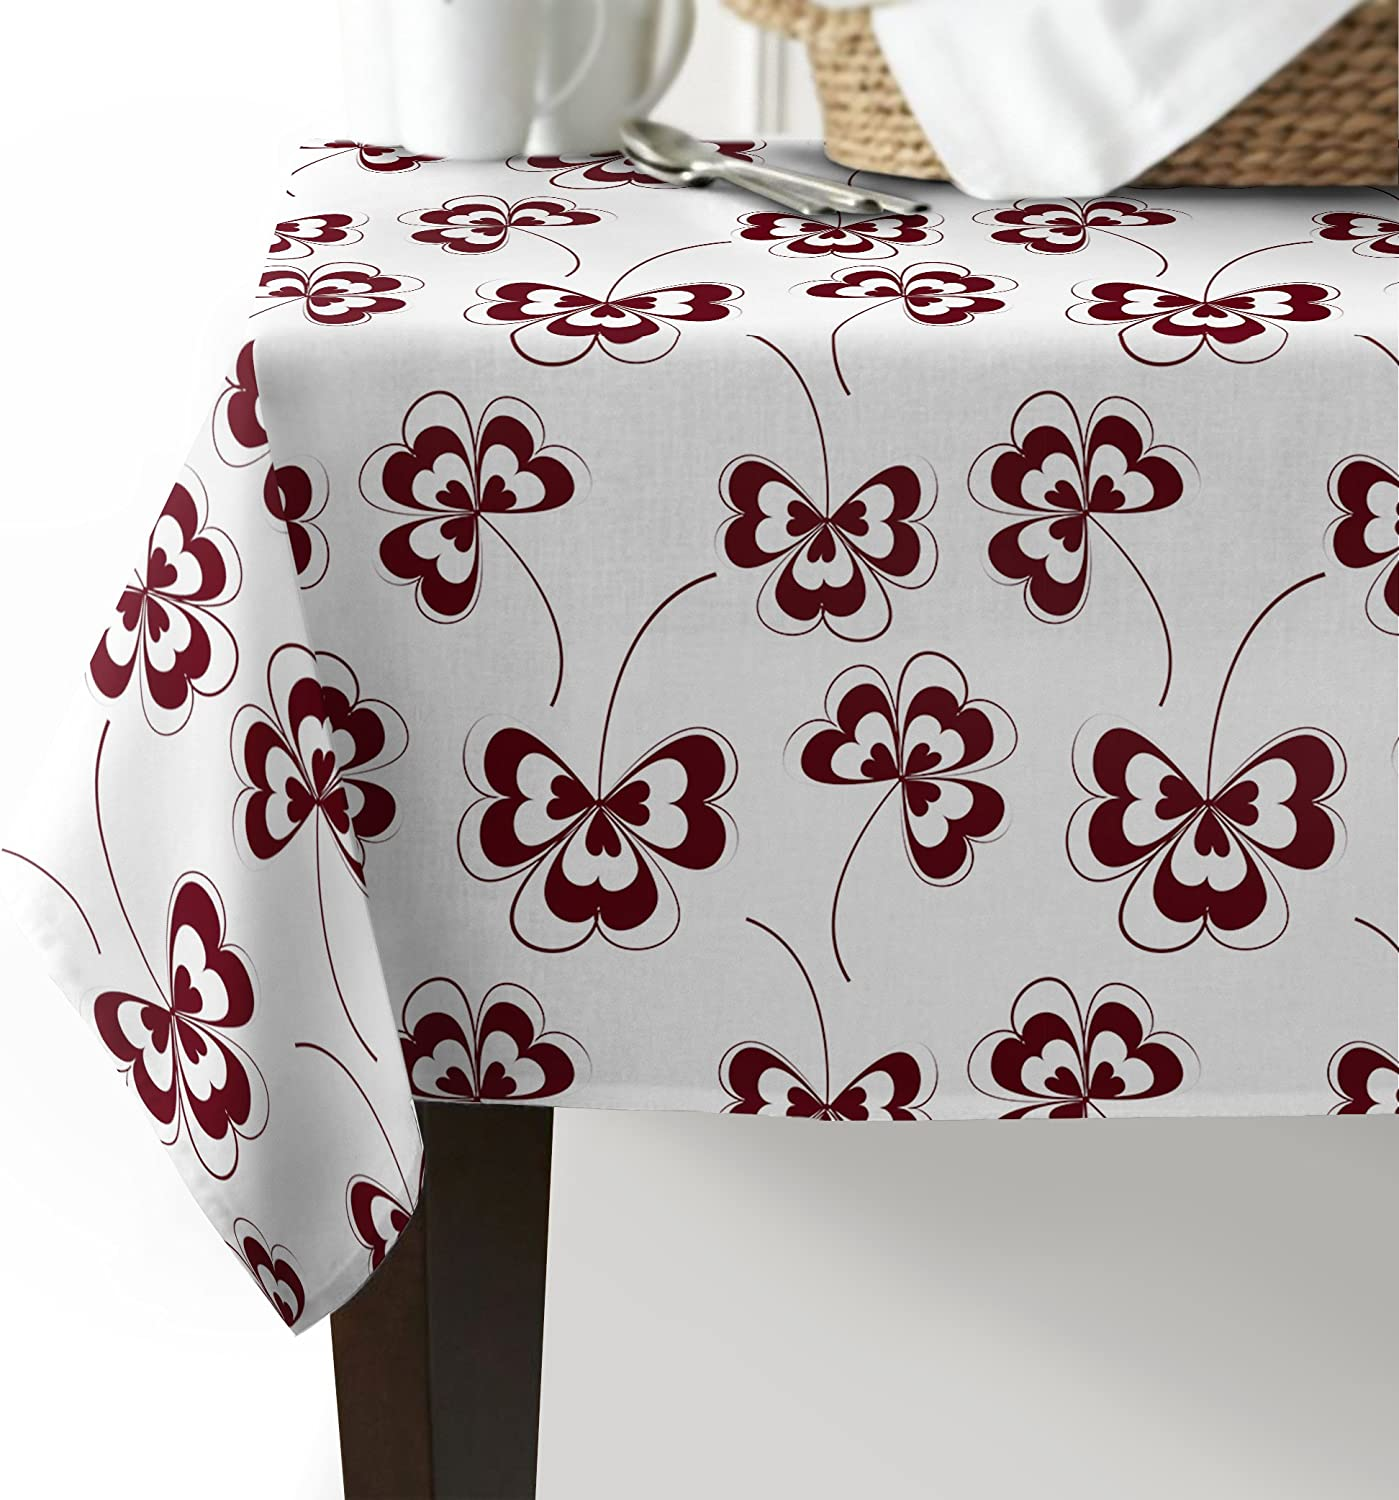 Edwiinsa Super special price Tablecloth Clover Pattern Table Line Cotton Cover Cloth Purchase